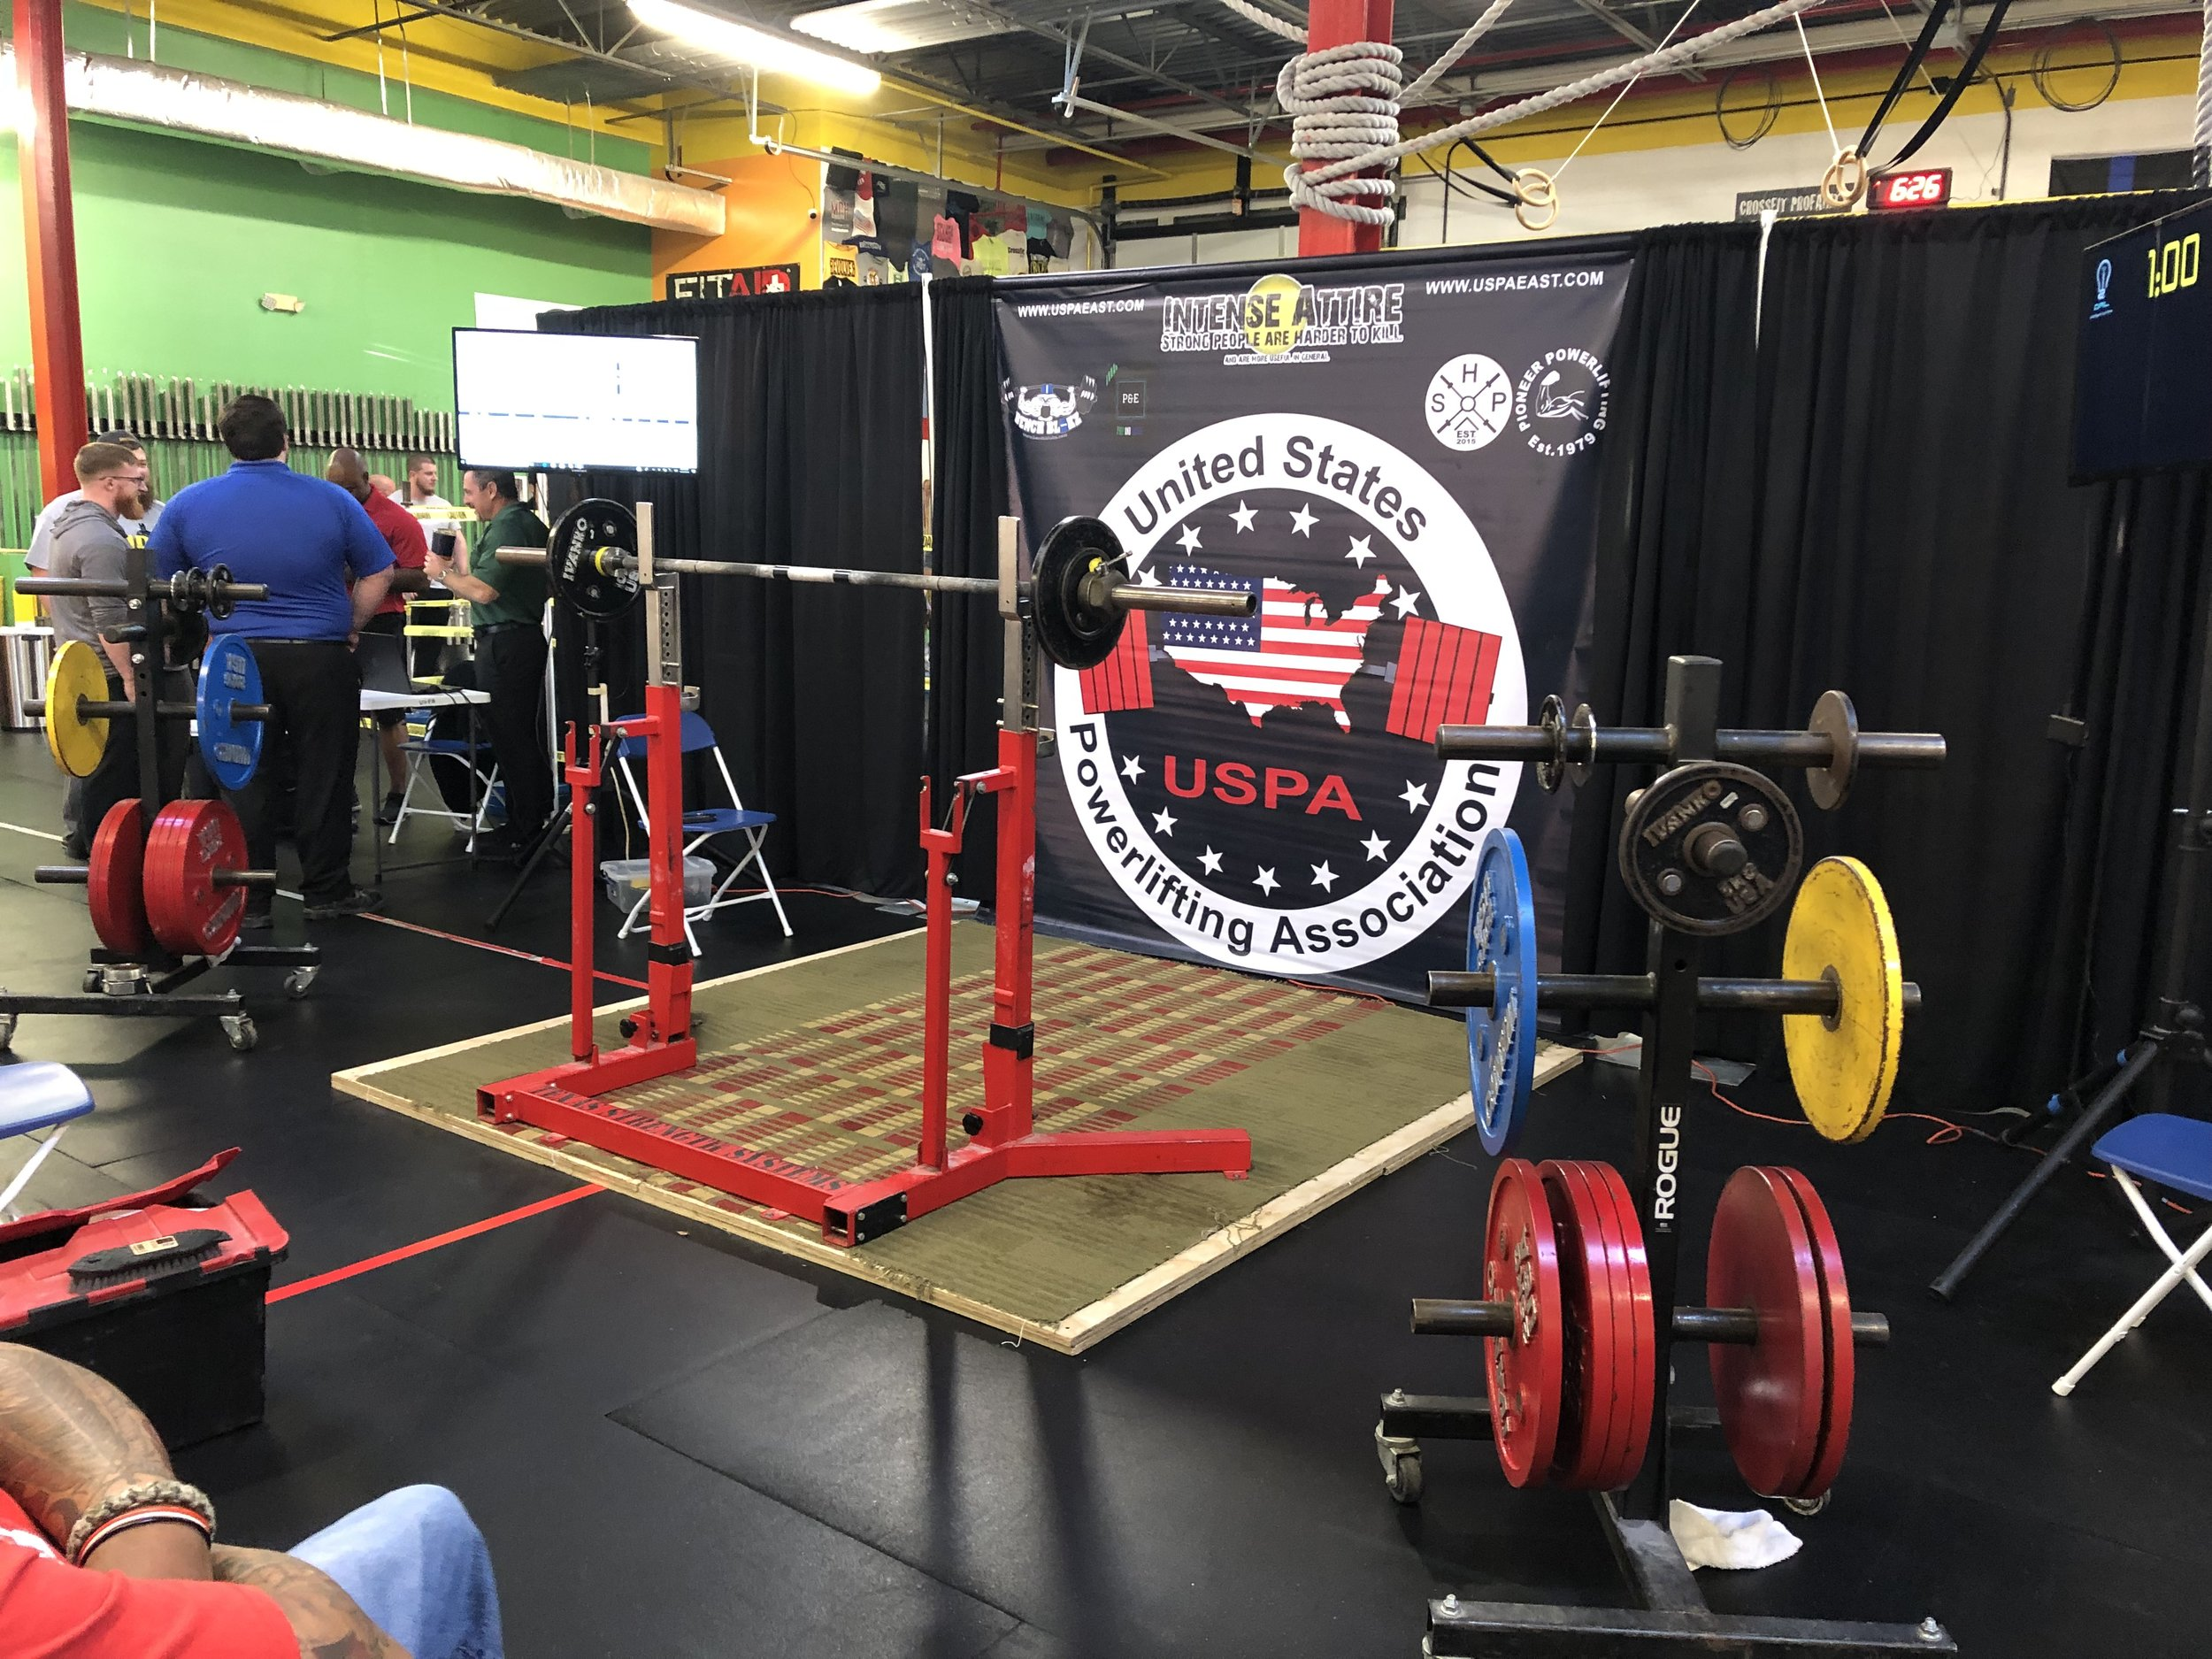 Our next Powerlifting meet will be held March 9th, 2019 from 8am to 6pm. We need volunteers to run a smooth, quick and successful meet. Please select the following link to sign-up for volunteering,  MARCH 9TH, 2019 meet volunteer .